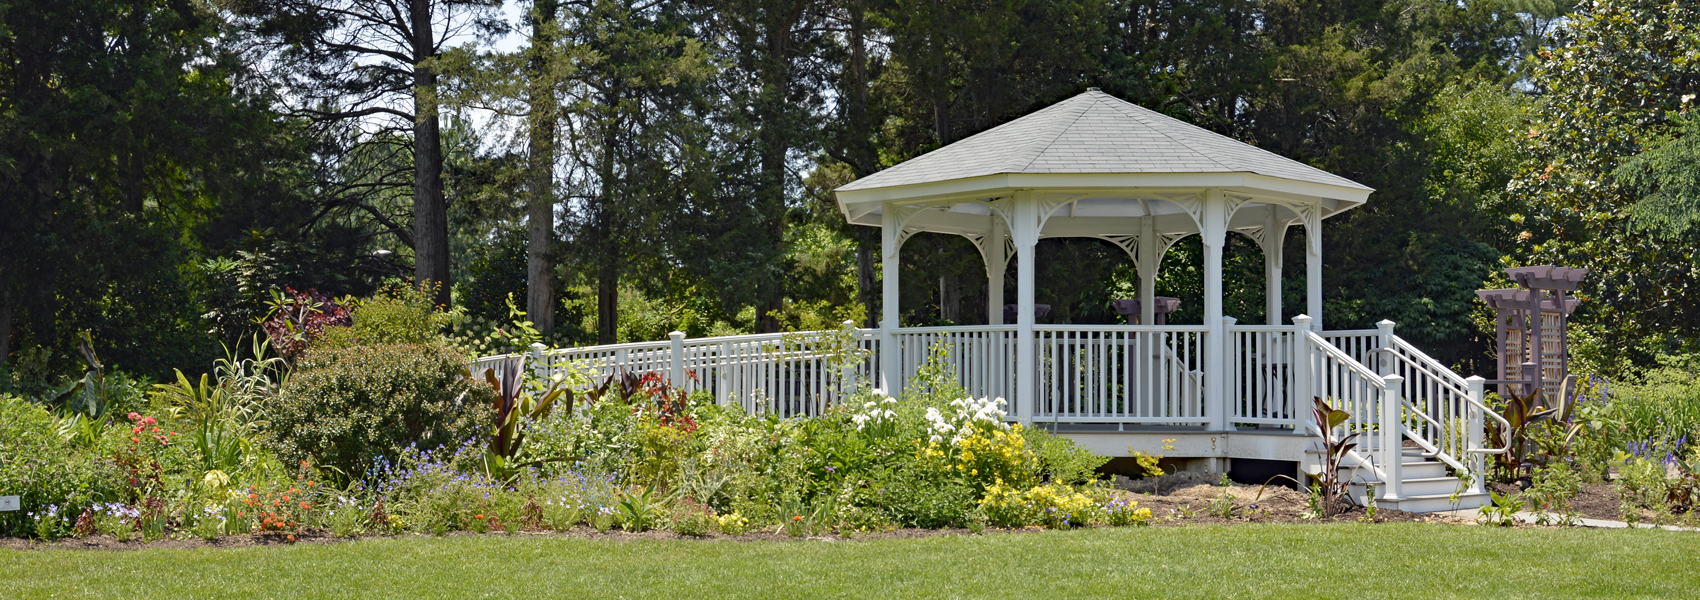 Flowers bloom around a gazebo